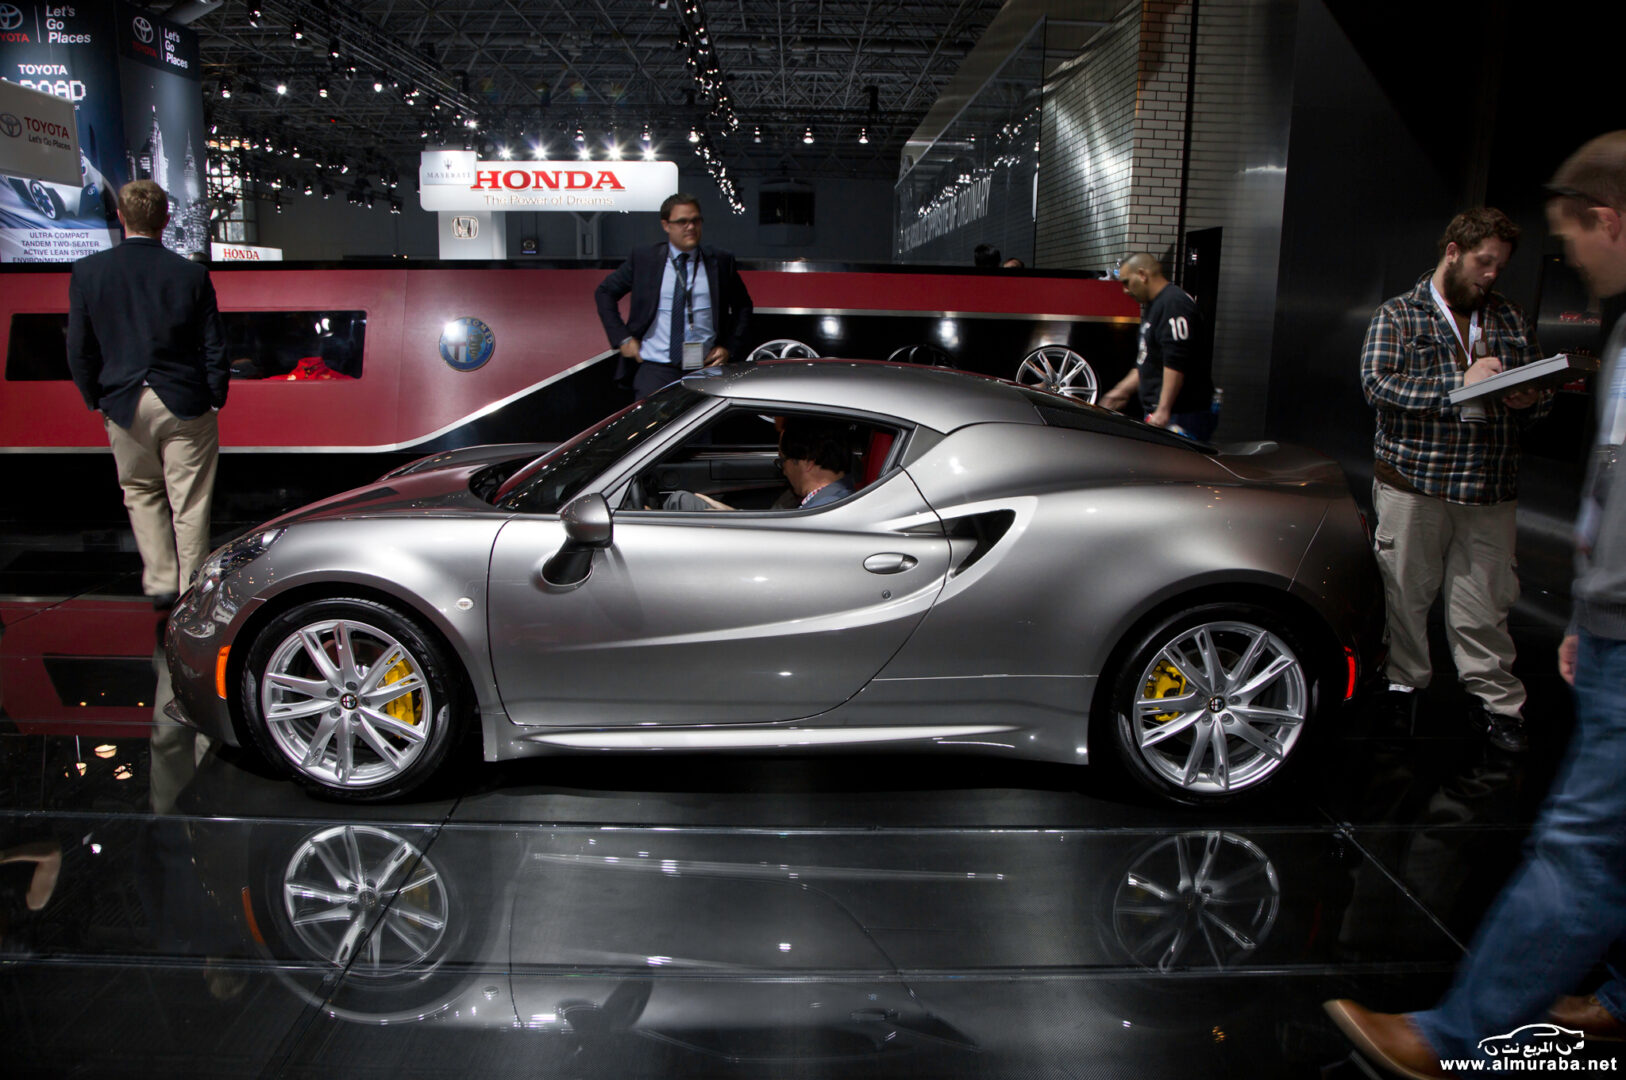 http---image.motortrend.com-f-wot-1404_2015_alfa_romeo_4c_launch_edition_arrives_this_june-72848130-2015-Alfa-Romeo-4C-Launch-Edition-side-02